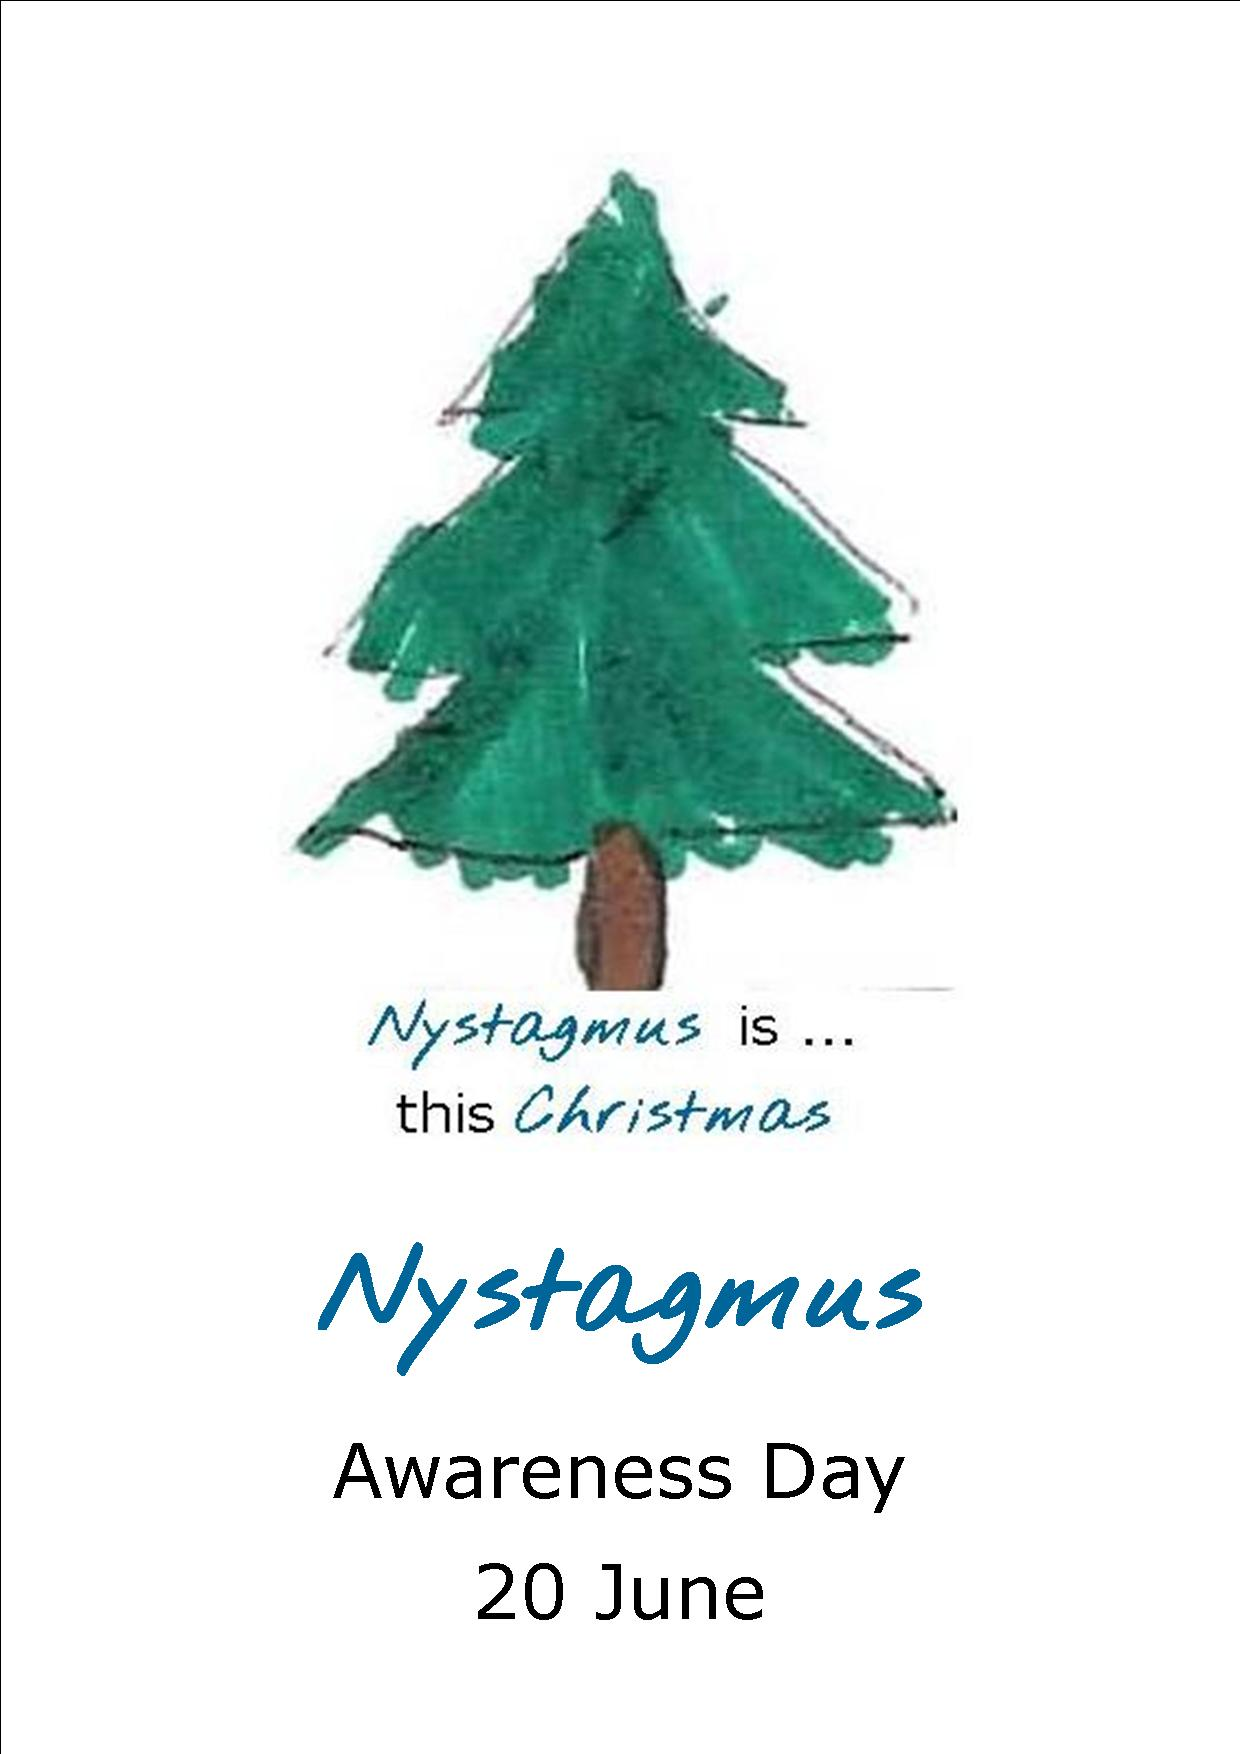 Nystagmus Awareness Day